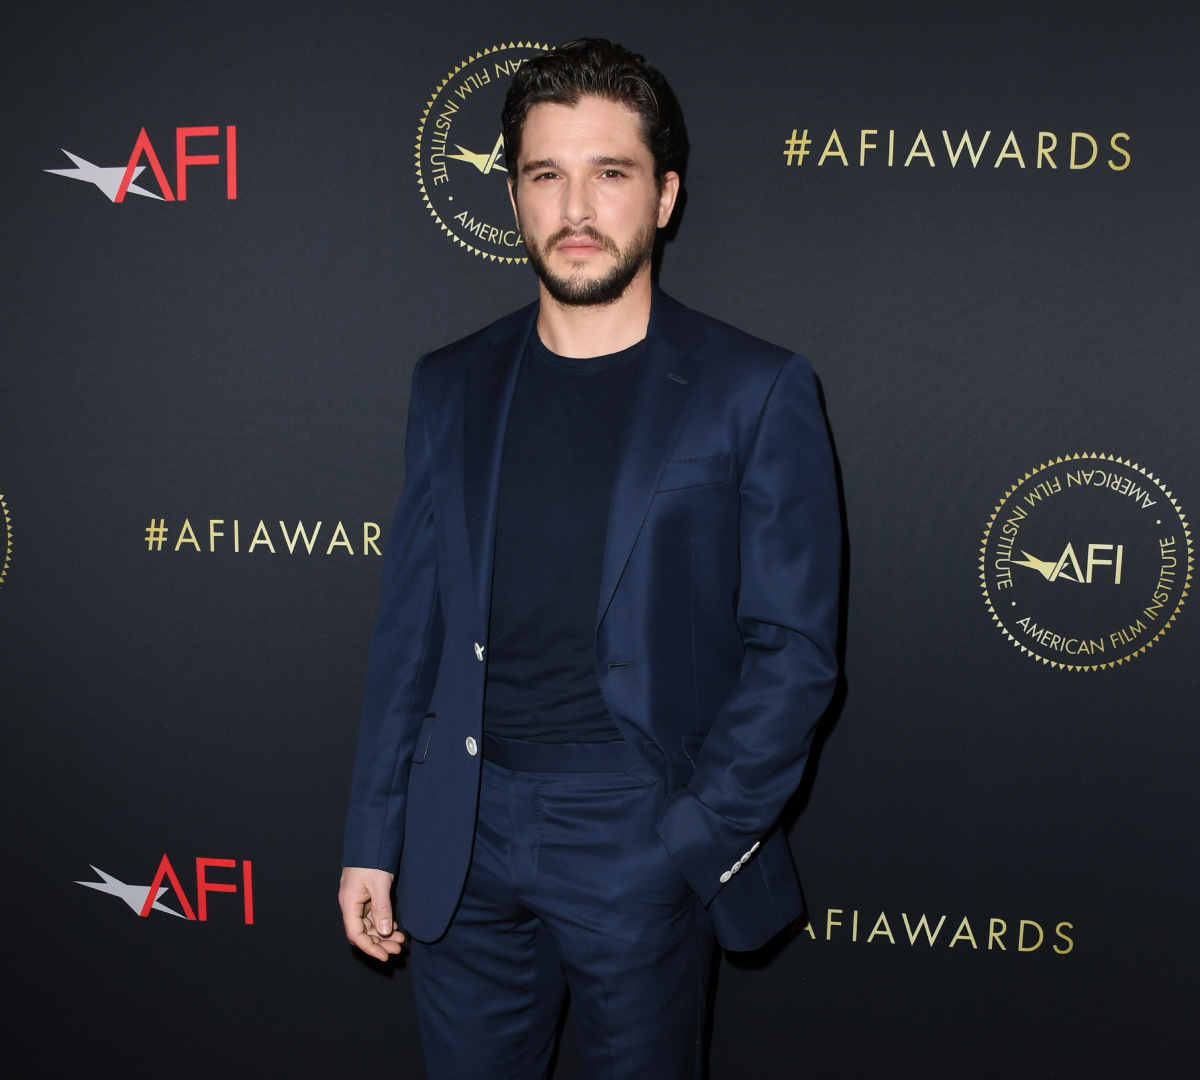 Kit Harington attends the 20th Annual AFI Awards at Four Seasons Hotel Los Angeles at Beverly Hills on January 03, 2020 in Los Angeles, California